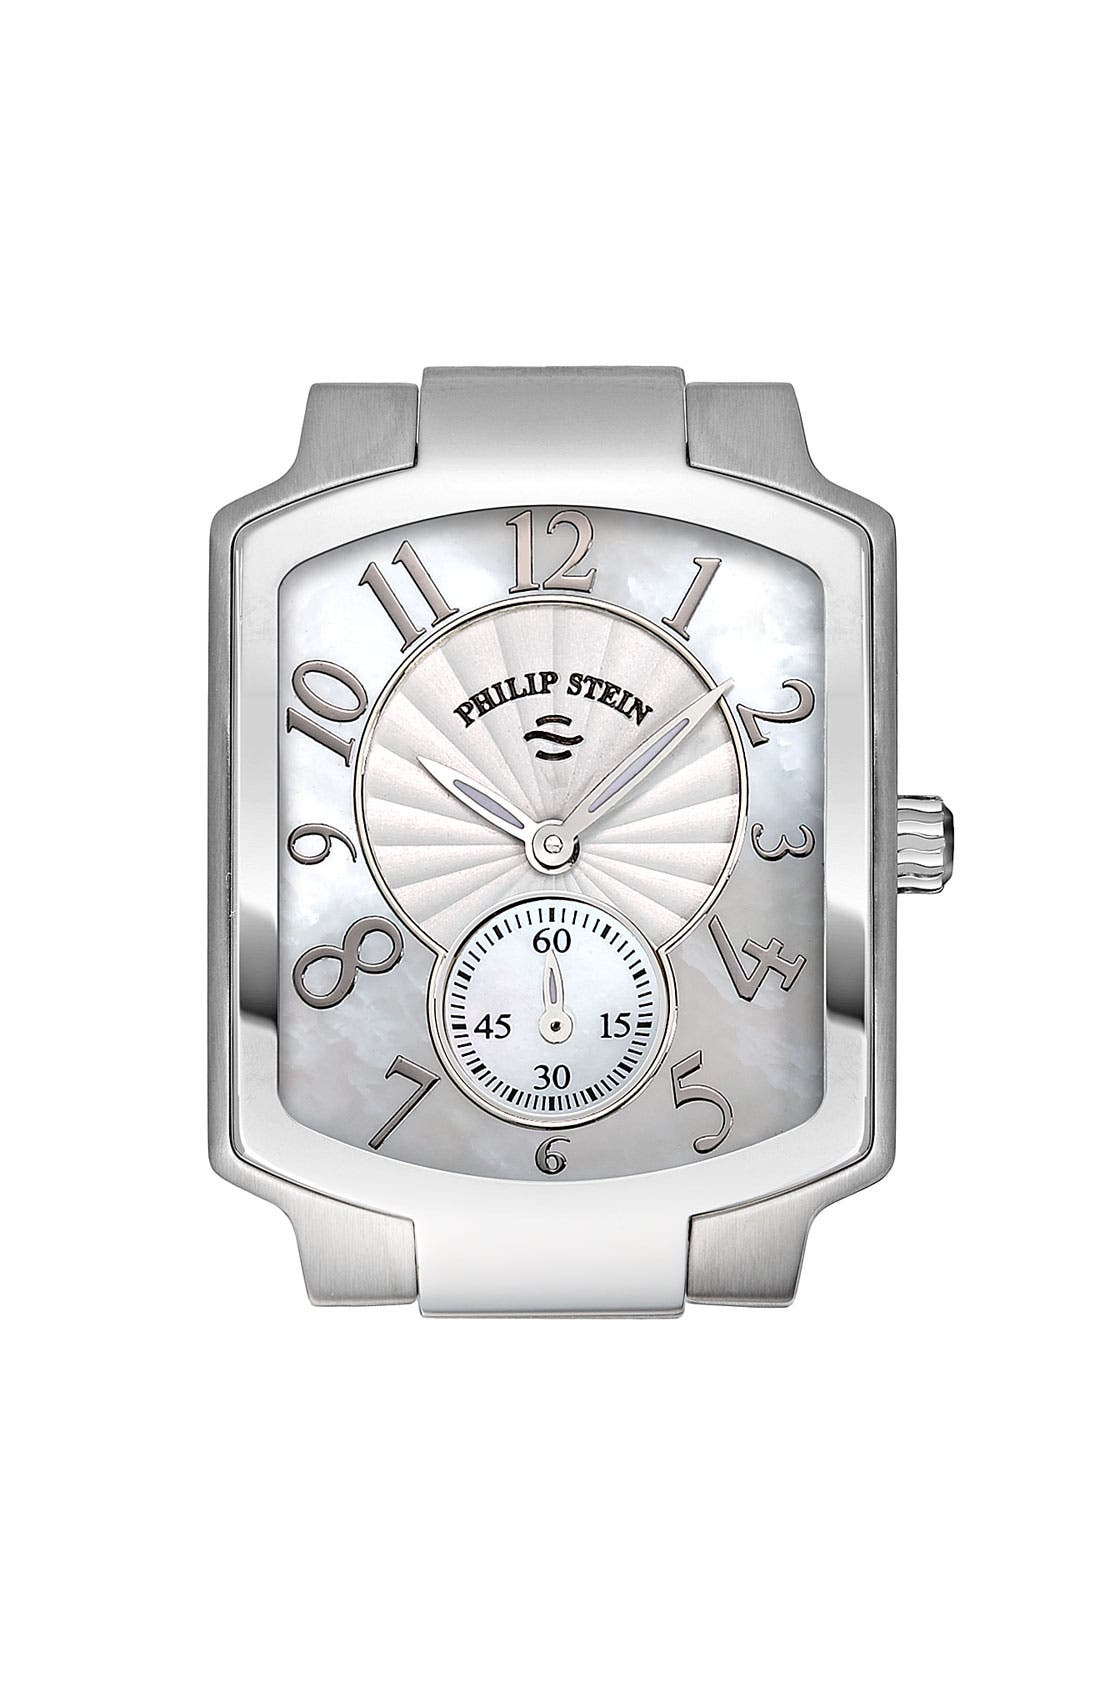 Main Image - Philip Stein® Ladies' 'Classic' Small Stainless Steel Watch Case